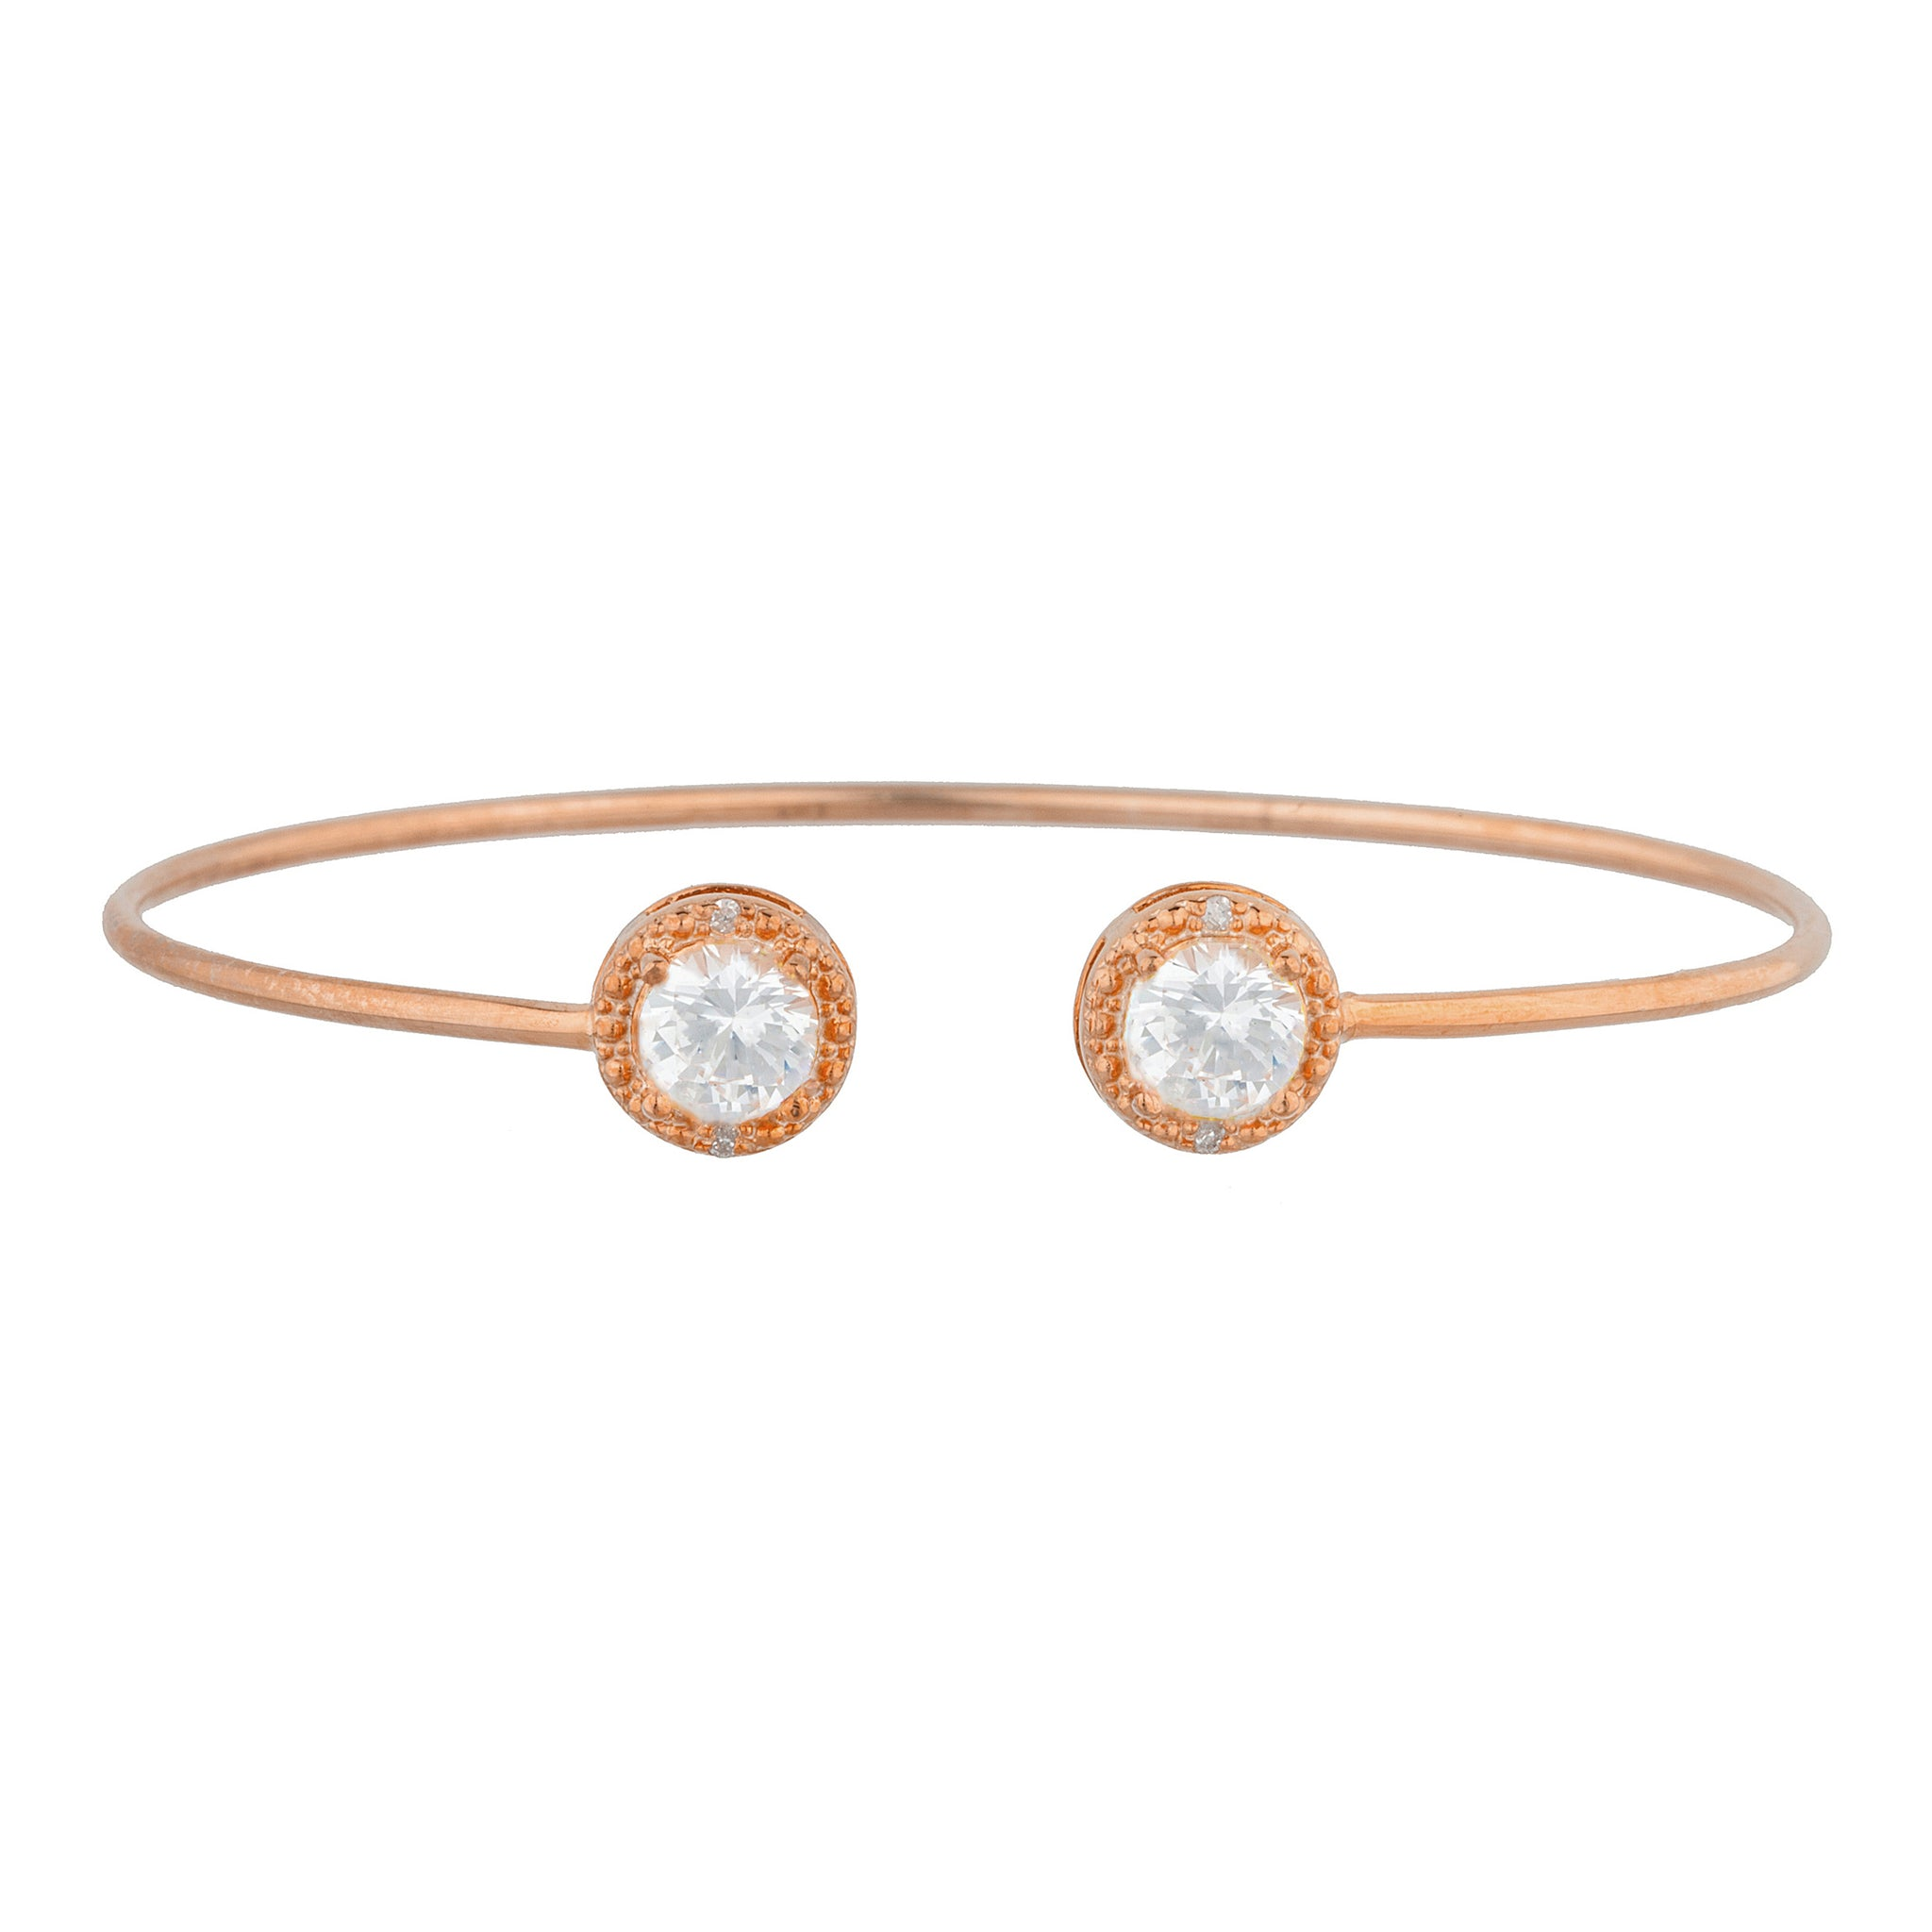 14Kt Rose Gold Plated White Sapphire & Diamond Round Bangle Bracelet